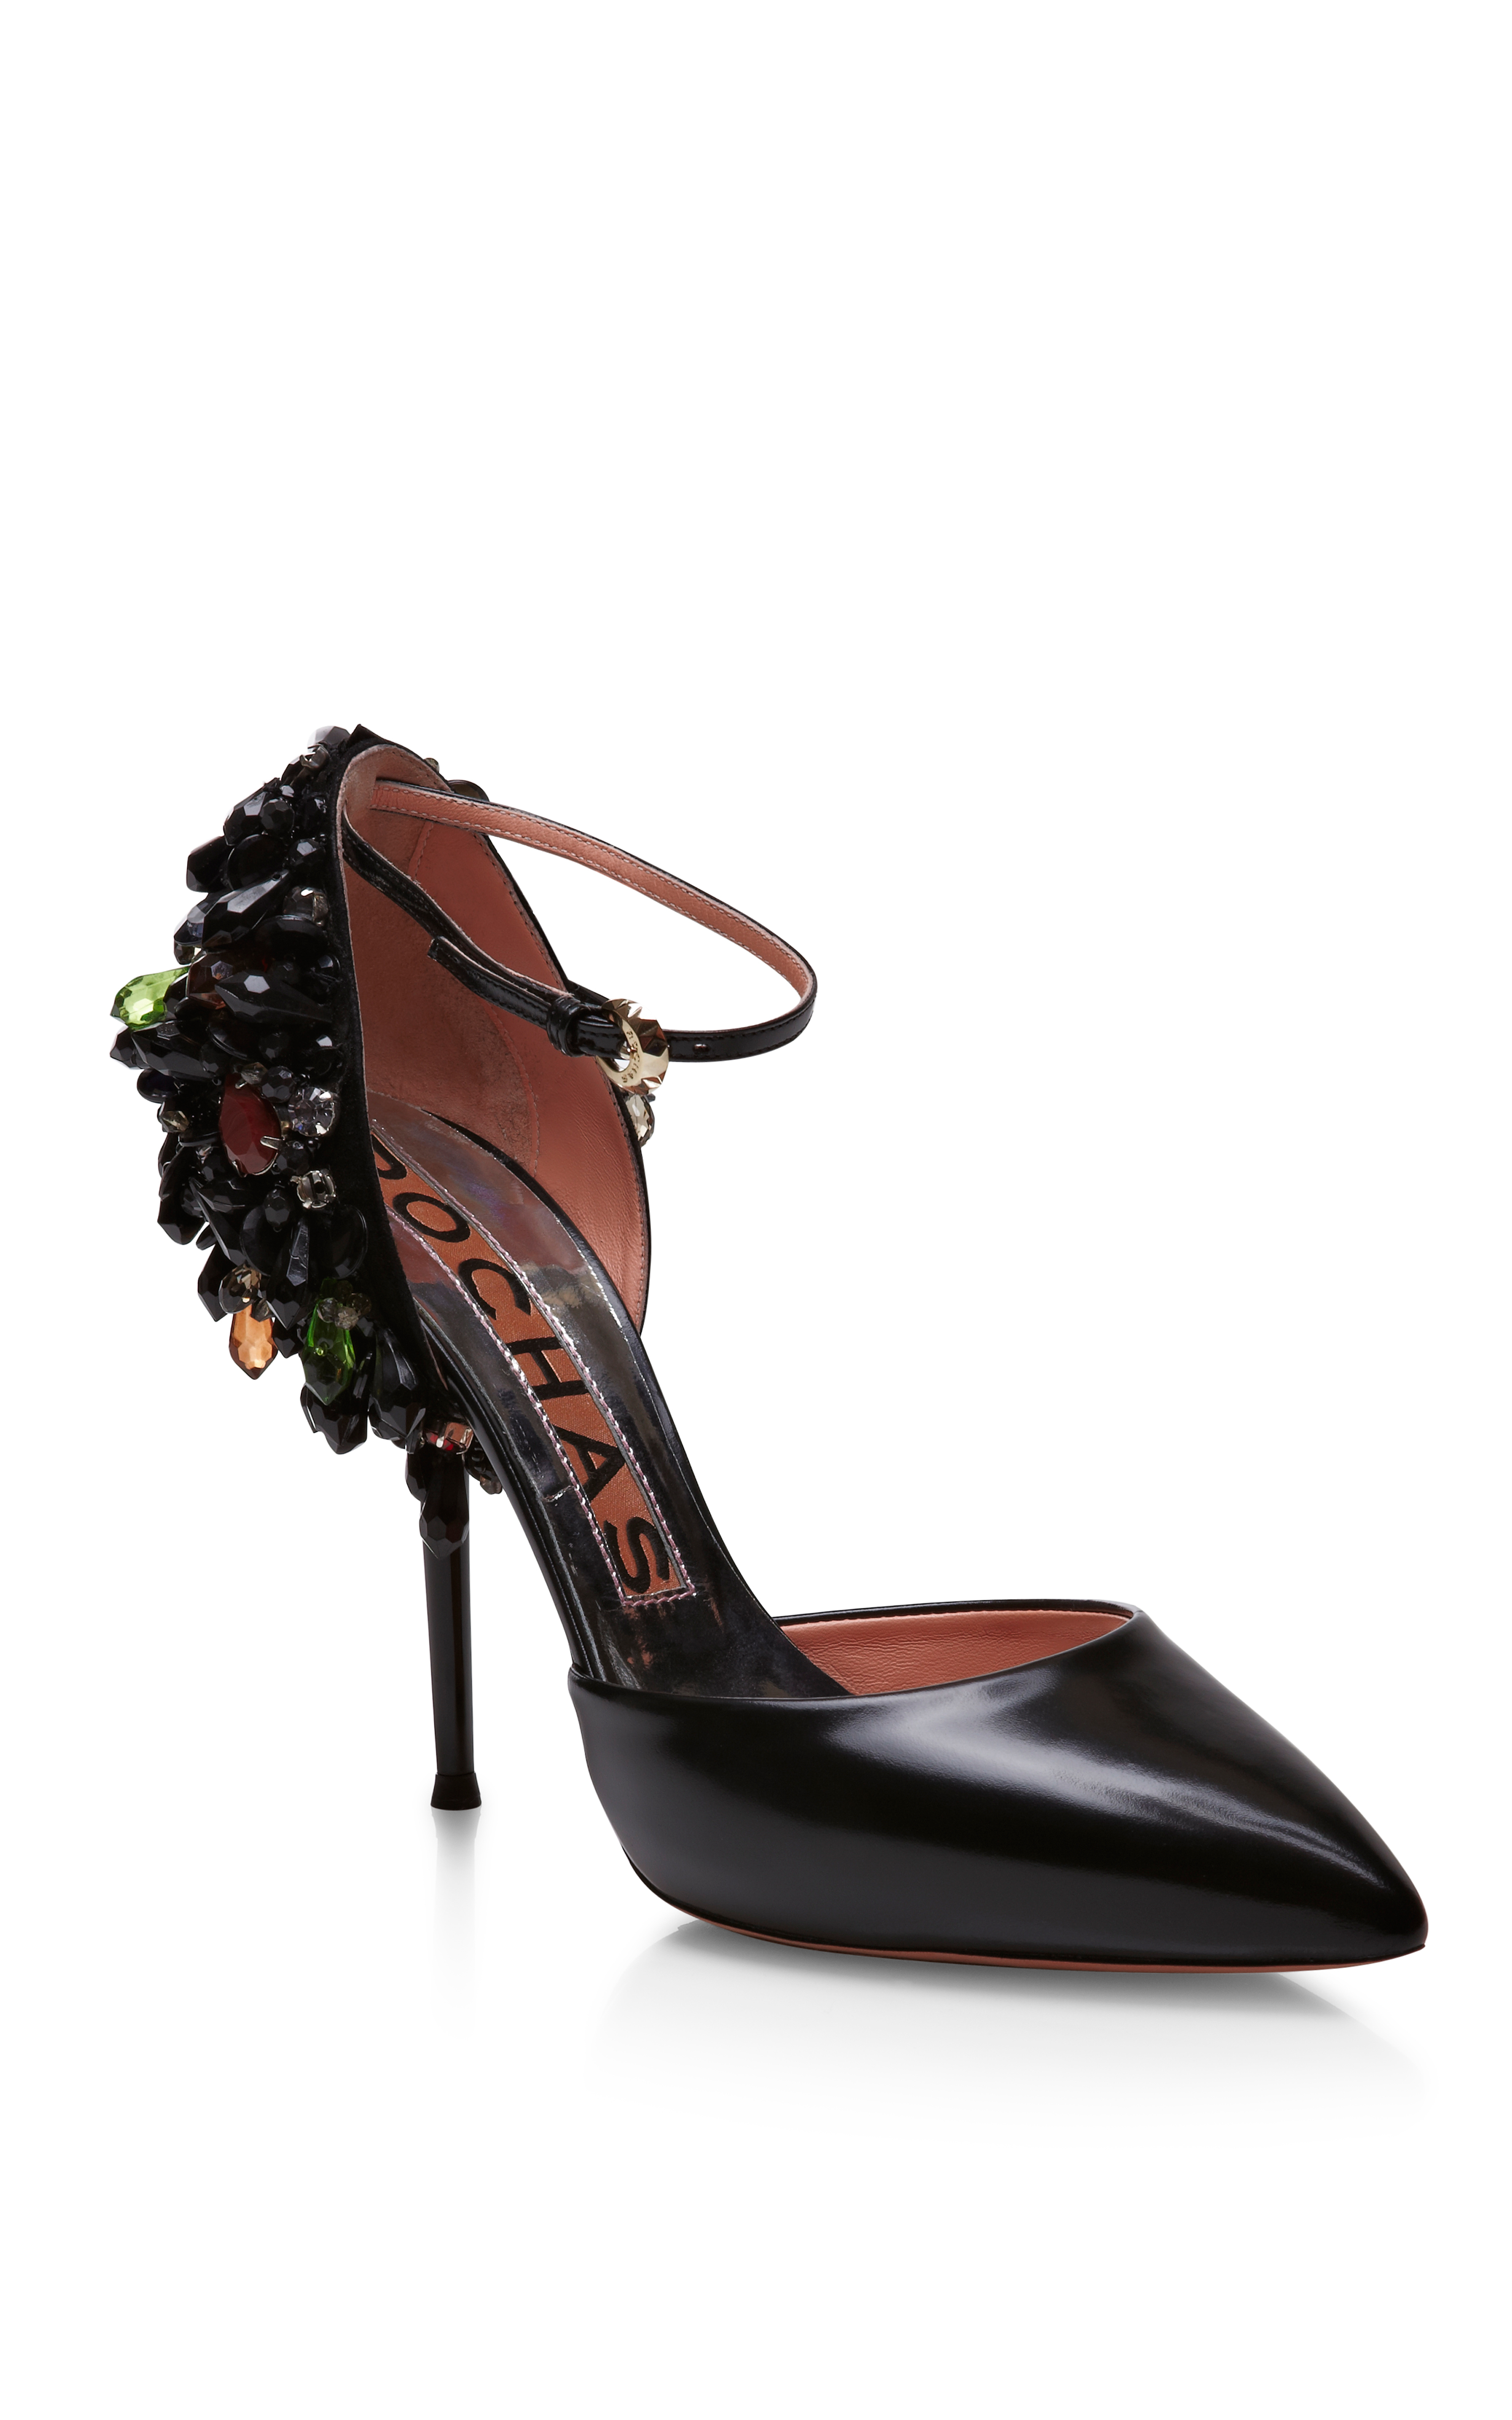 view online discount 100% original Rochas embellished heel pumps outlet 2015 new clearance official site cheap sale 2014 unisex rGeSW8bd